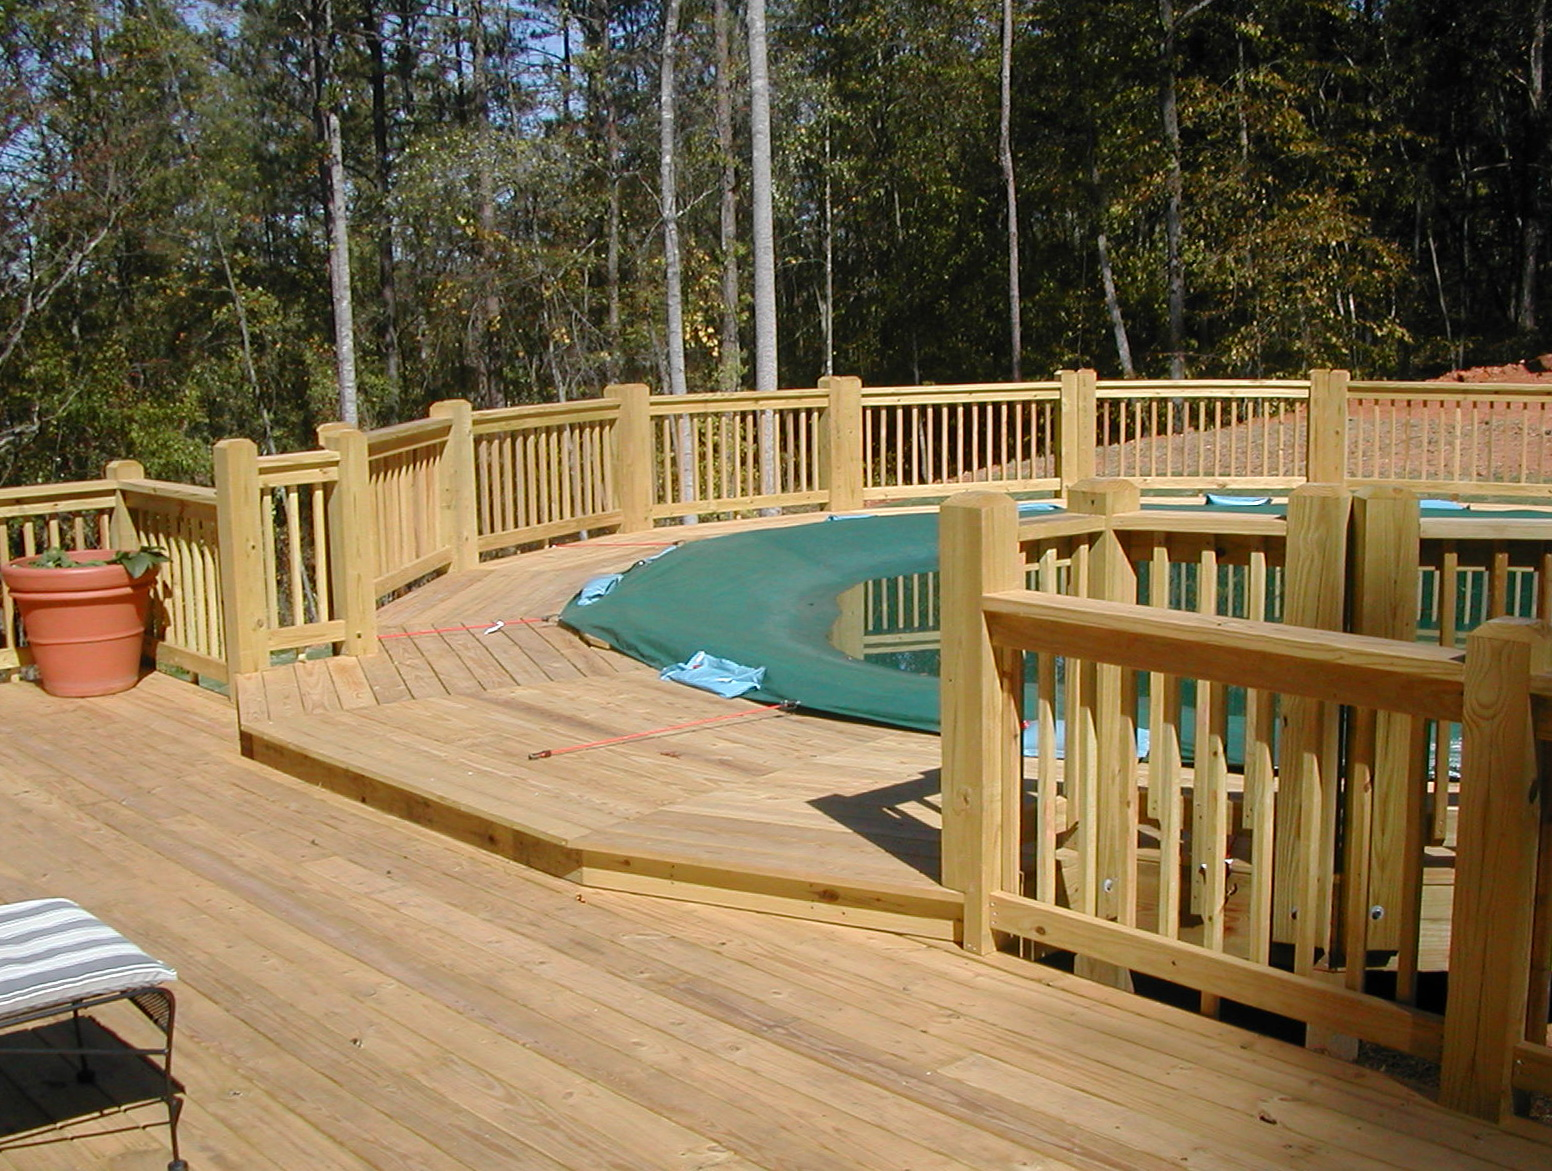 Above ground swimming pool decks plans home design ideas for Above ground pool decks home depot